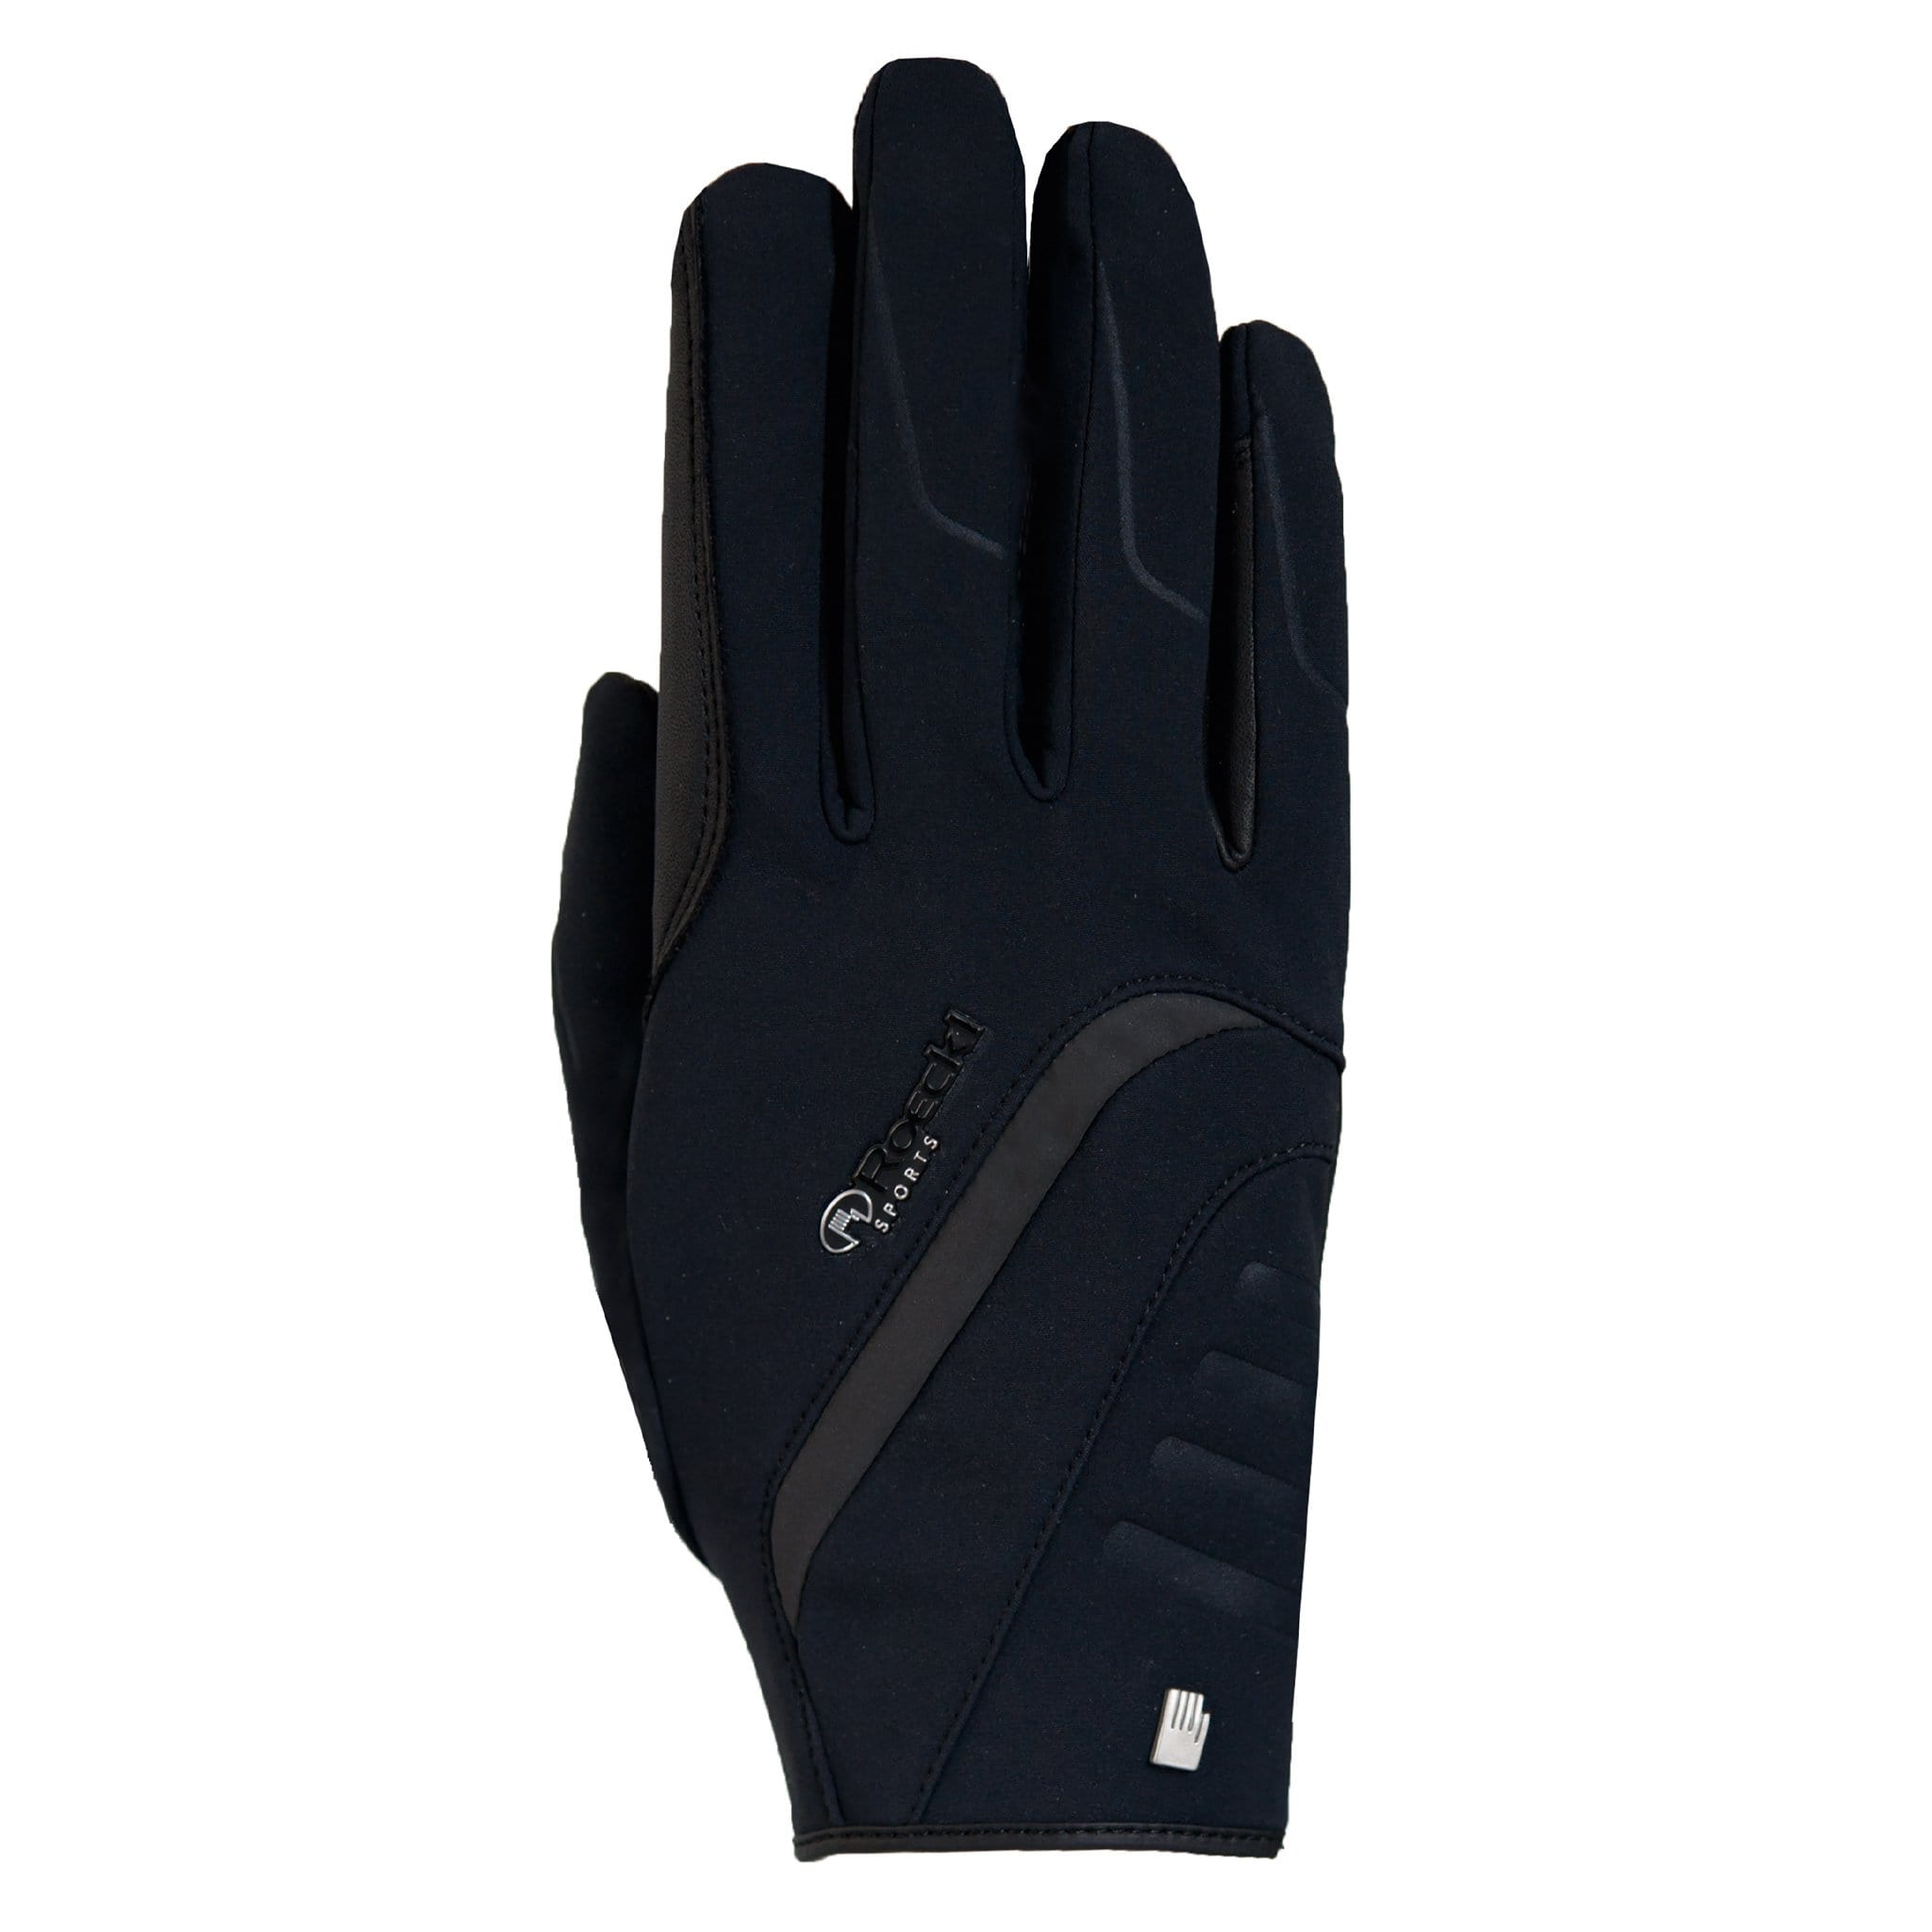 Roeckl Willow Gloves 3301-576-000 Black Back View